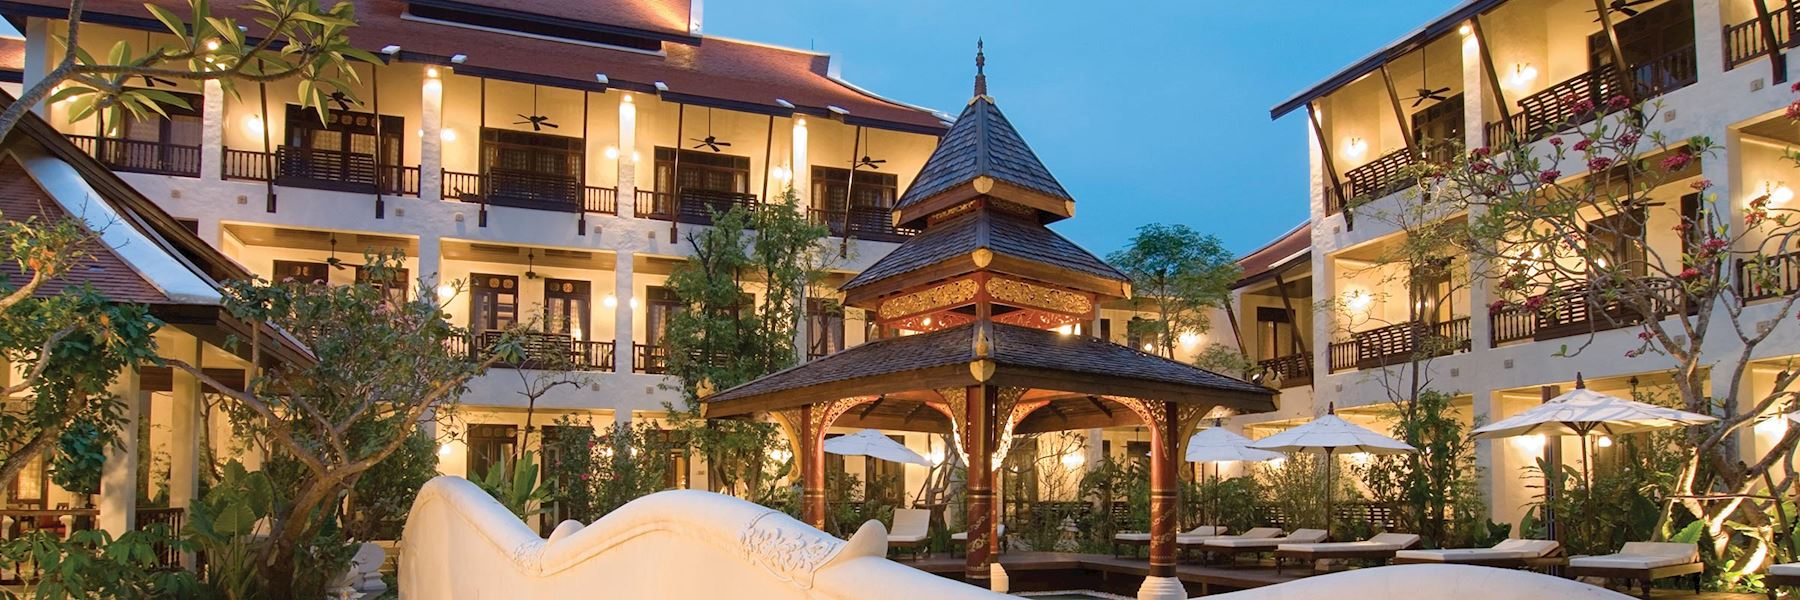 Puripunn Boutique Hotel Hotels In Chiang Mai Audley Travel